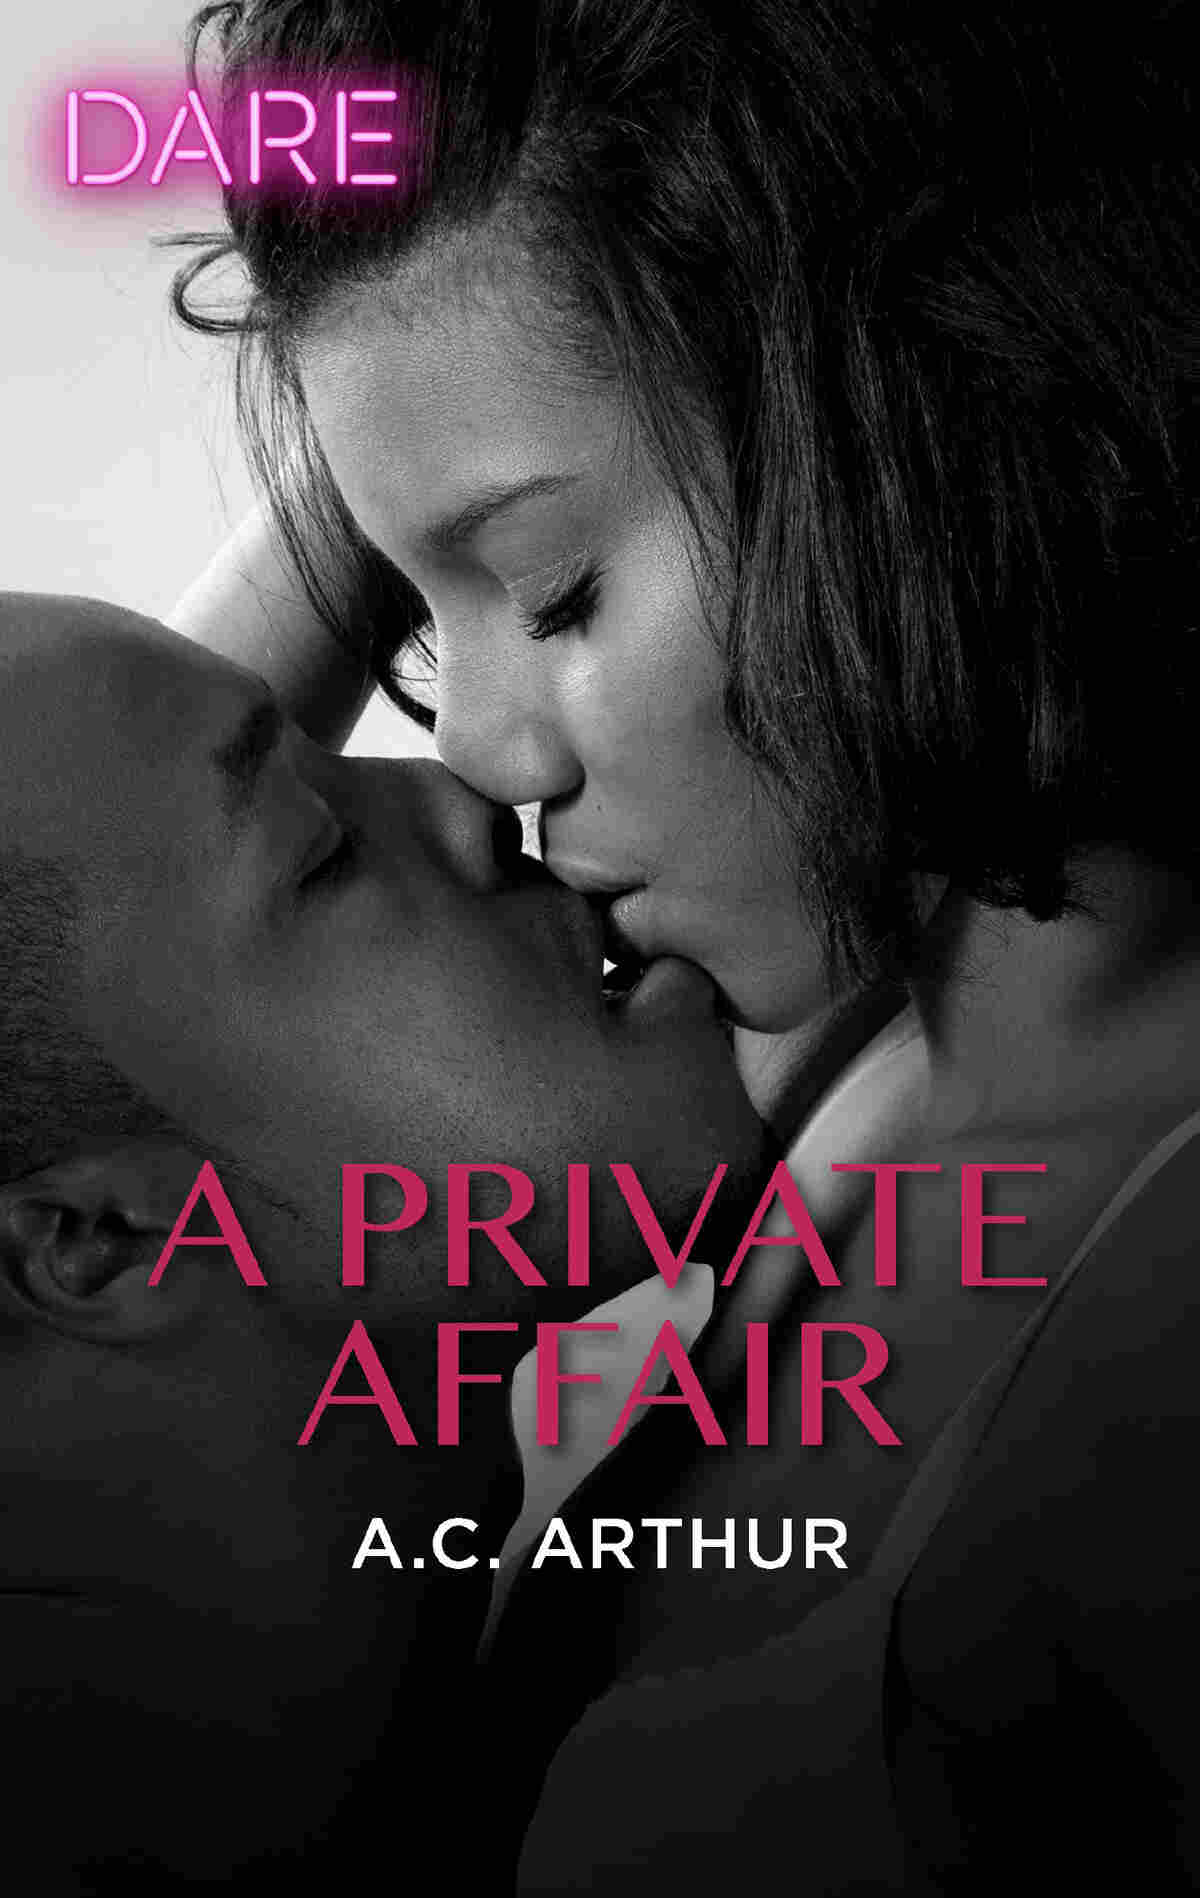 A Private Affair, by A.C. Arthur